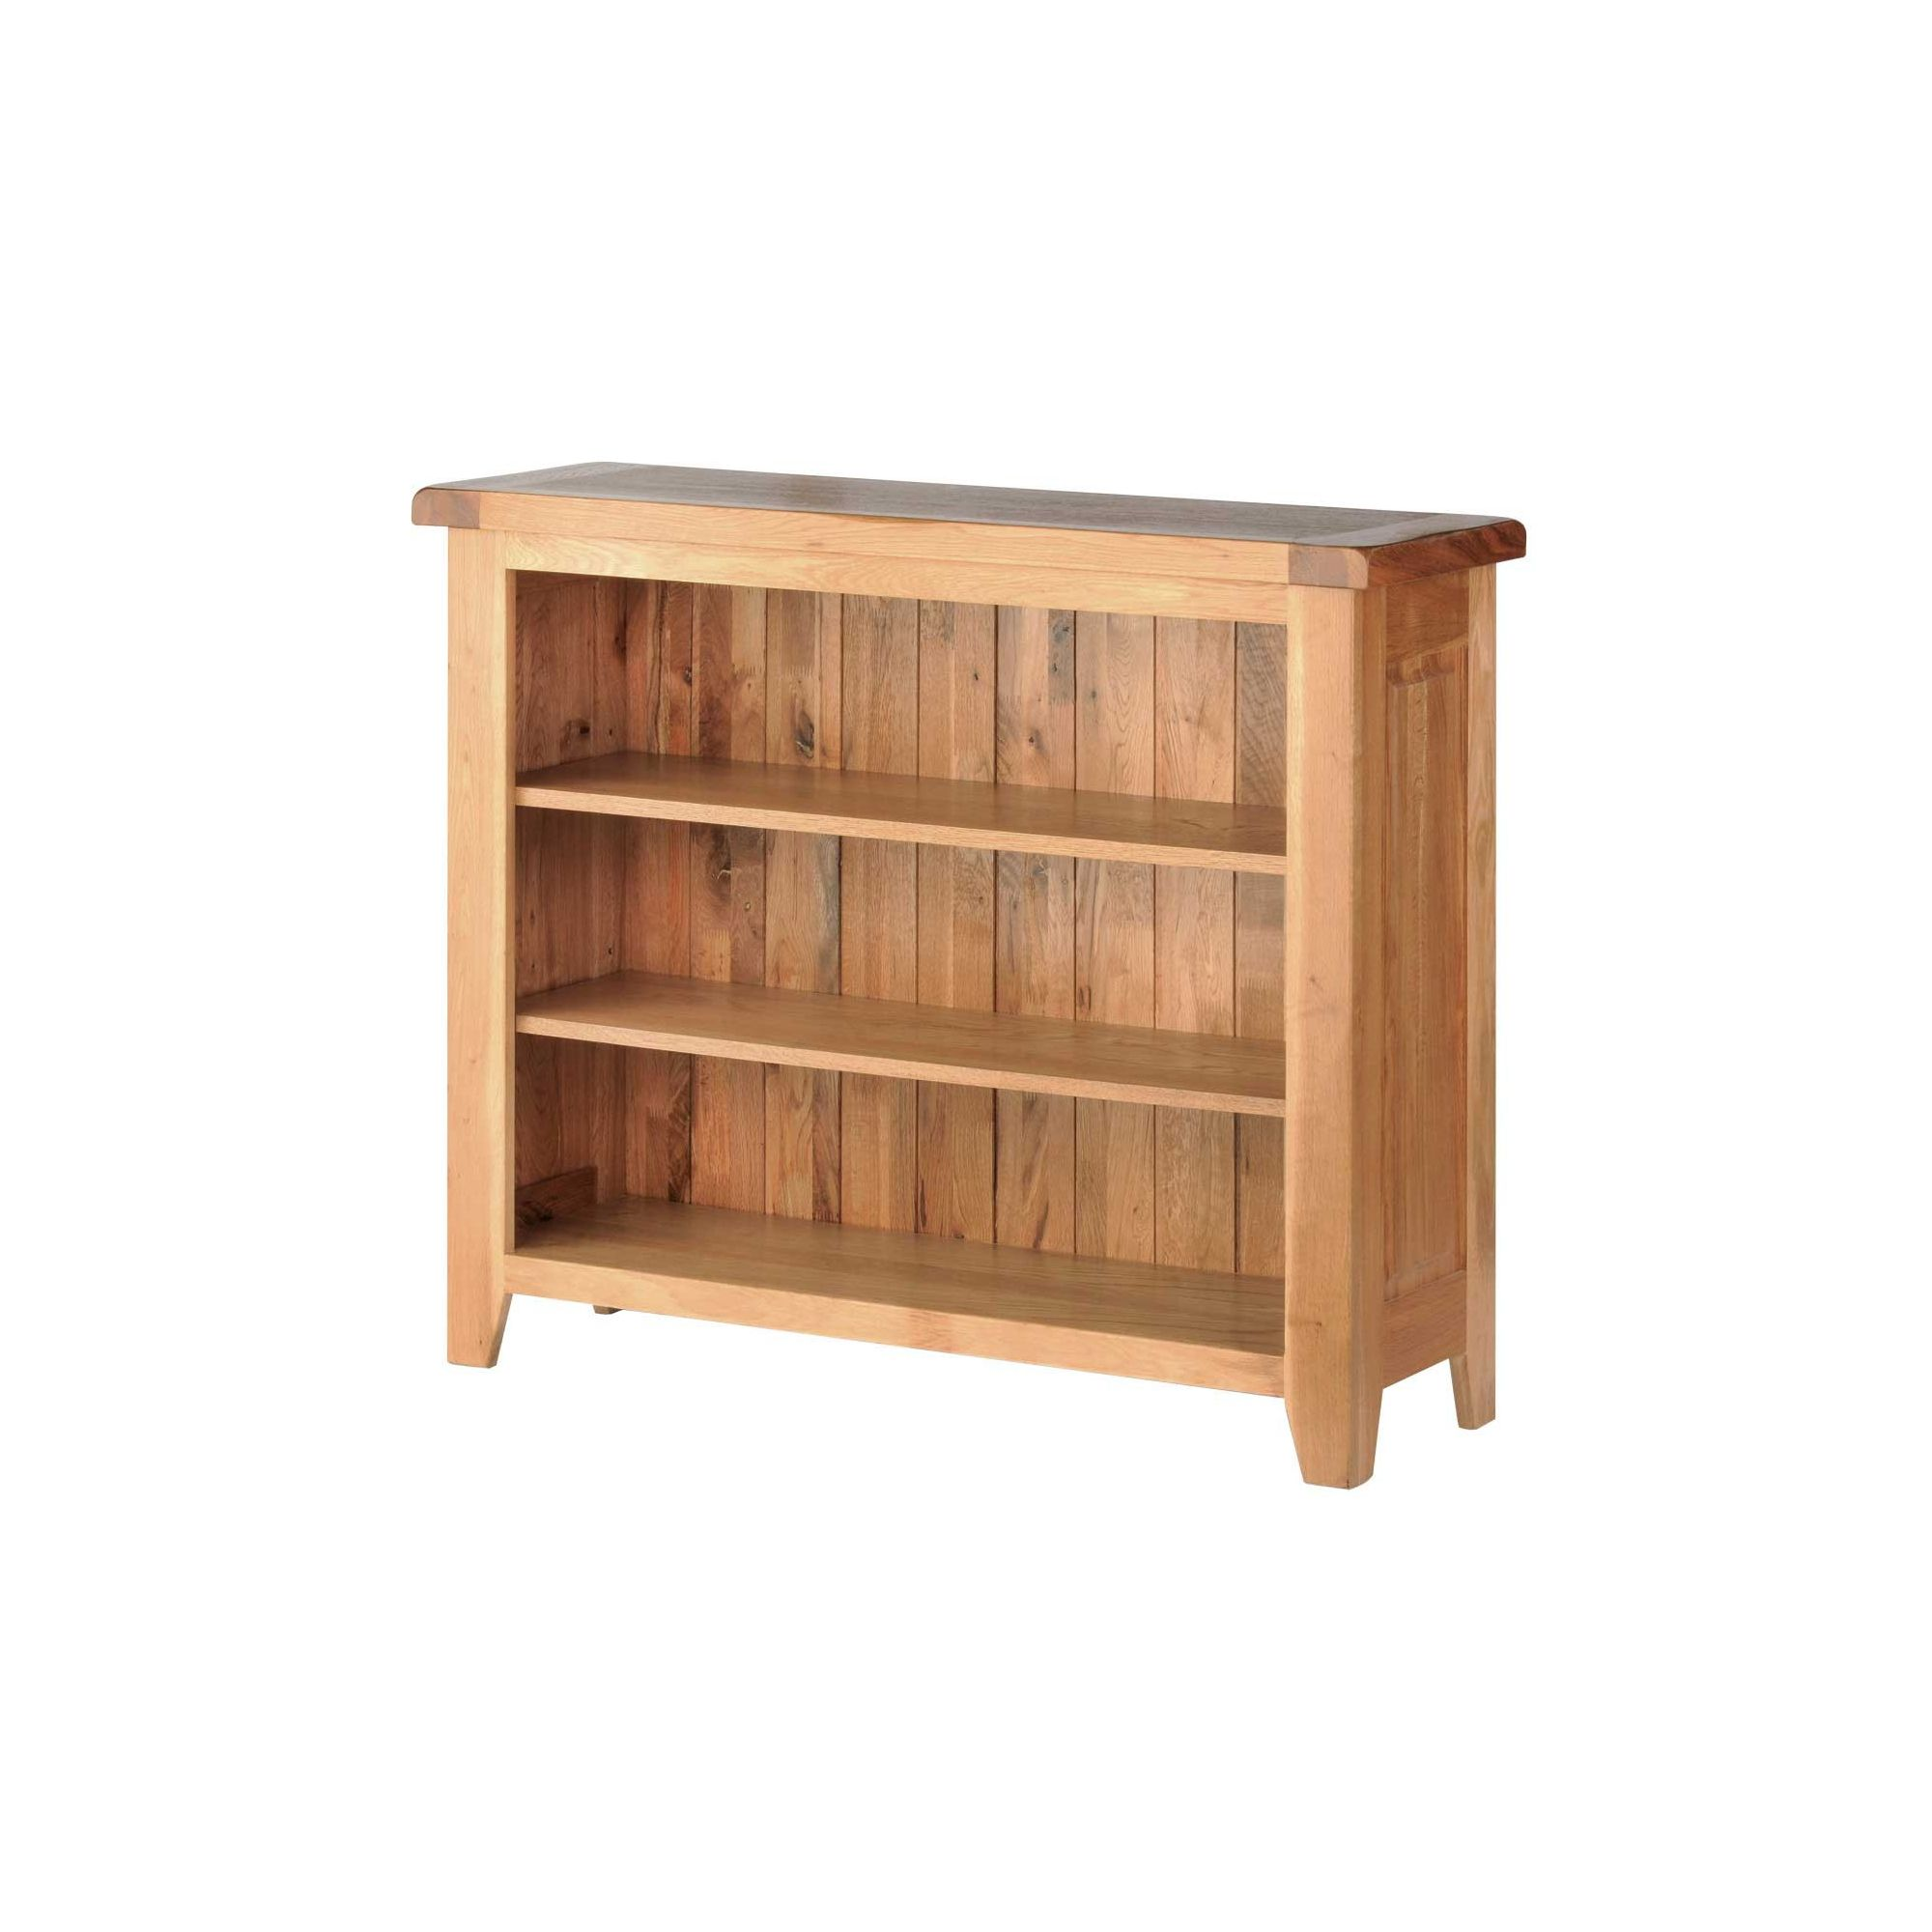 Thorndon Sandown Small Bookcase in Rustic Oak at Tesco Direct